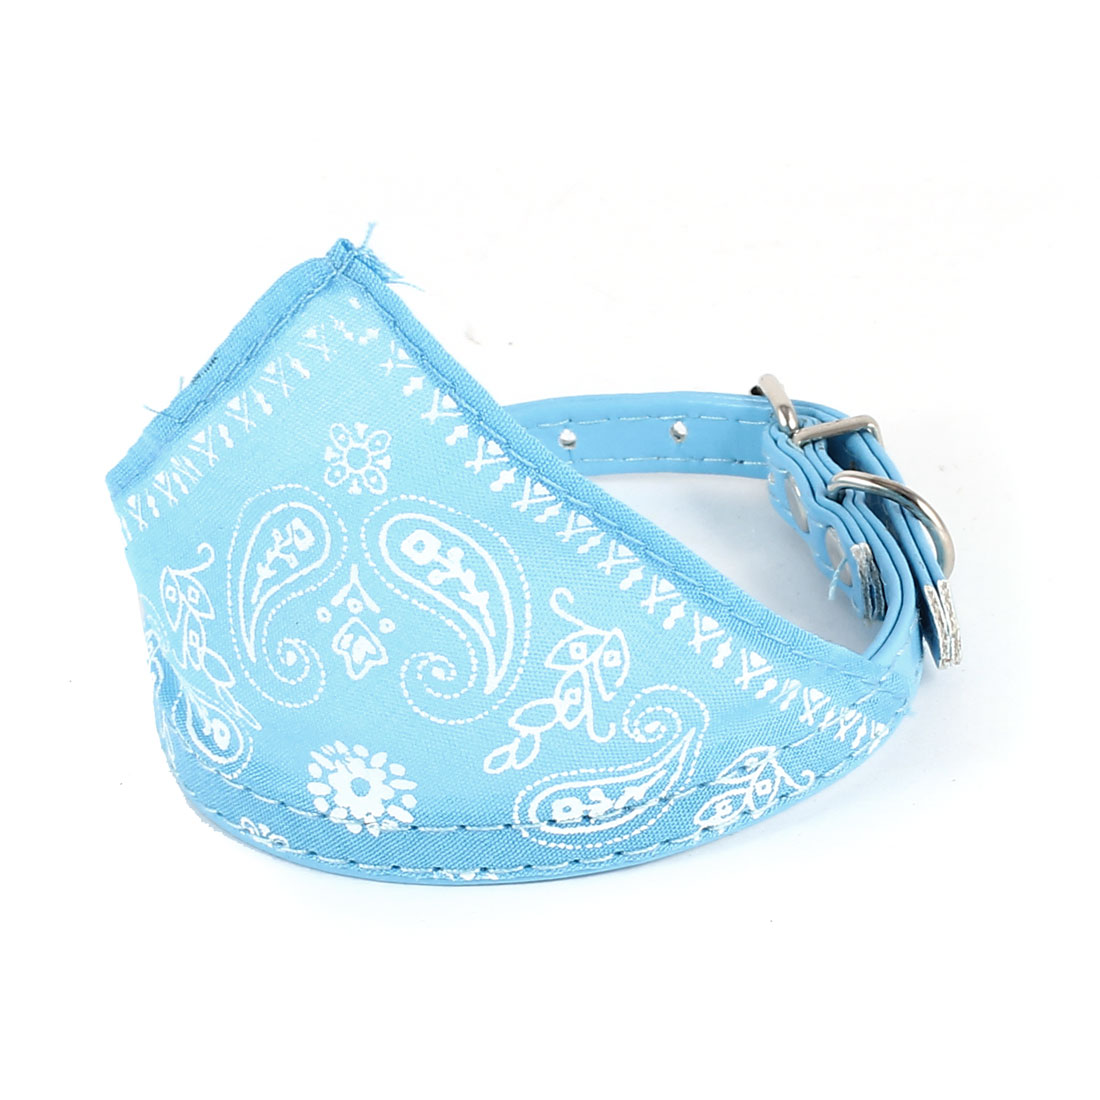 Single Prong Buckle Pet Dog Doggy Adjustable Scarf Bandana Collar Blue